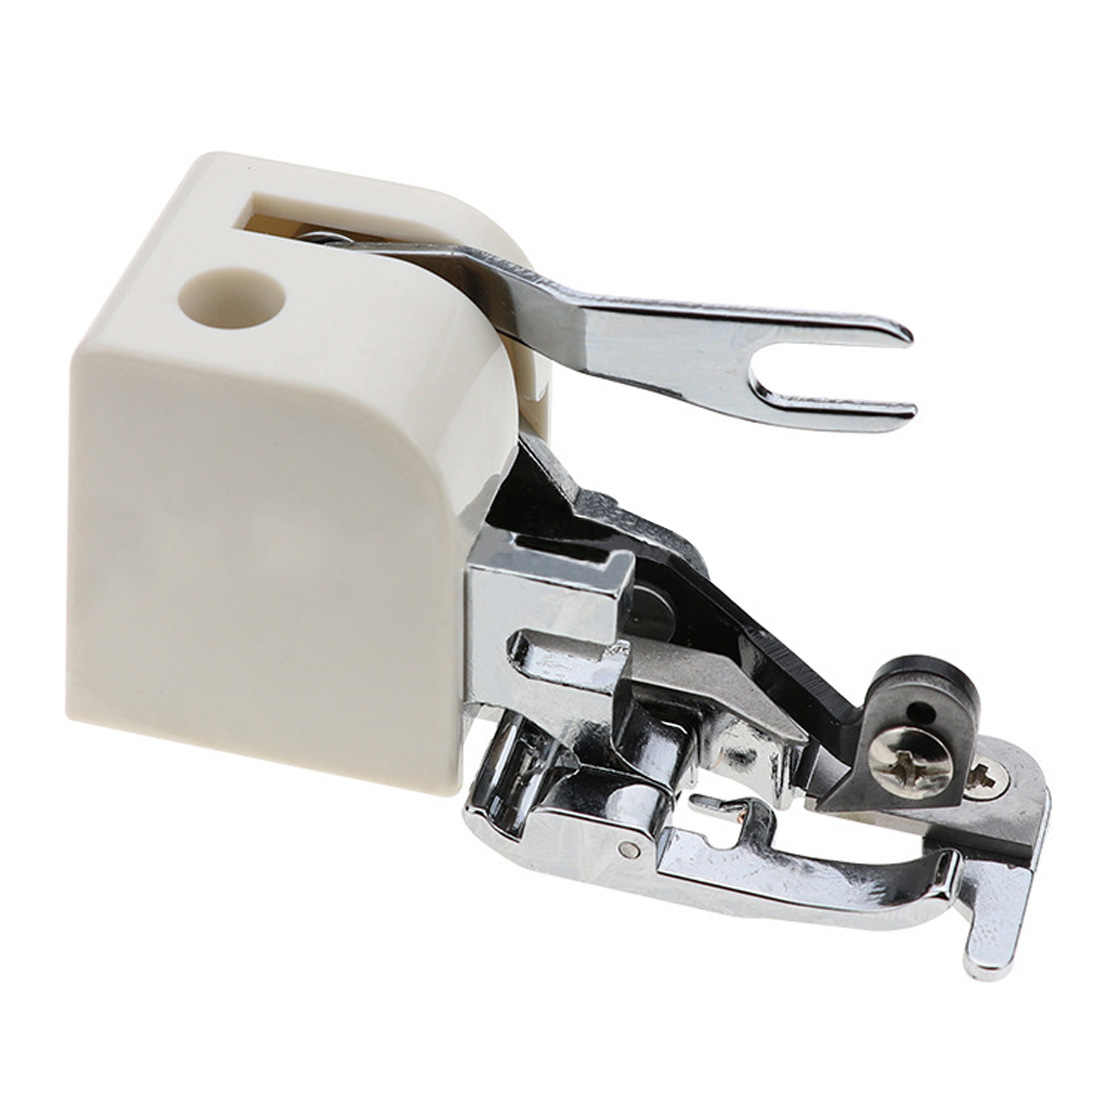 Side Cutter Overlock Sewing Machine Presser Foot Feet Sewing Machine Attachment For All Low Shank